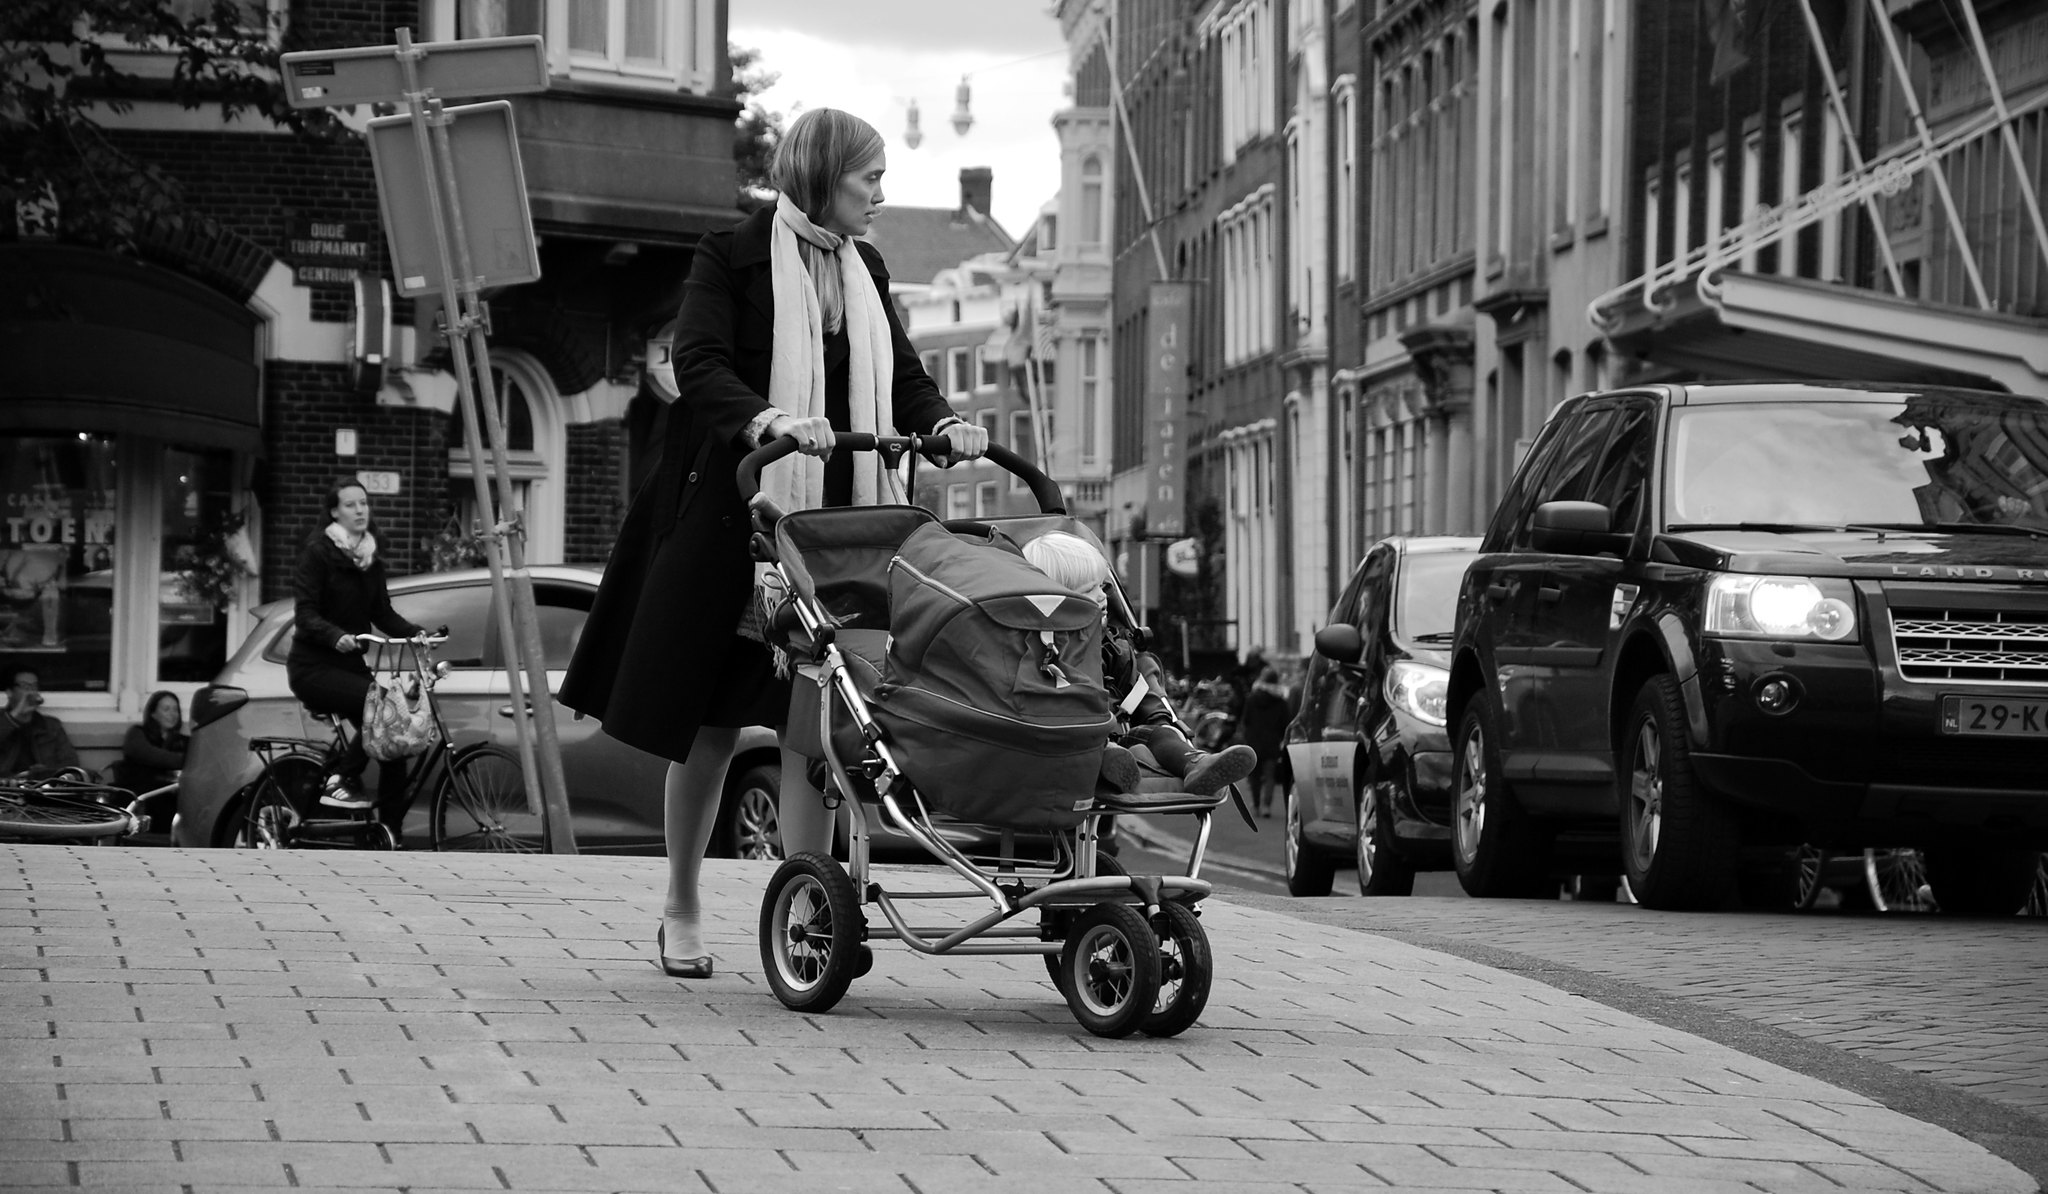 stroller black and white pic